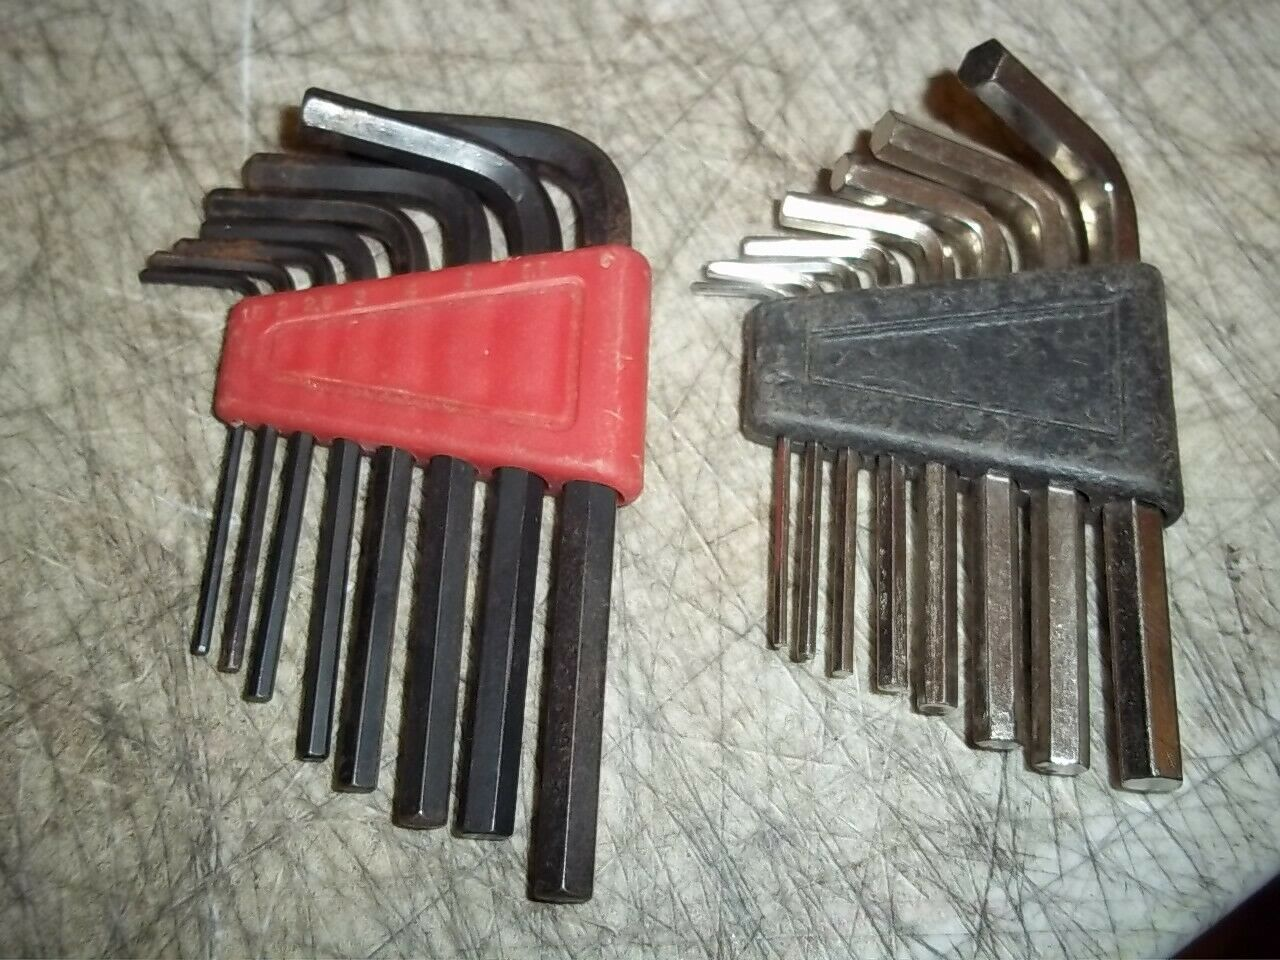 2 SETS 8 KEYS EA. L HEX KEY ALLEN WRENCHES INCHES & 1-6 IS THAT METRIC? - $8.90